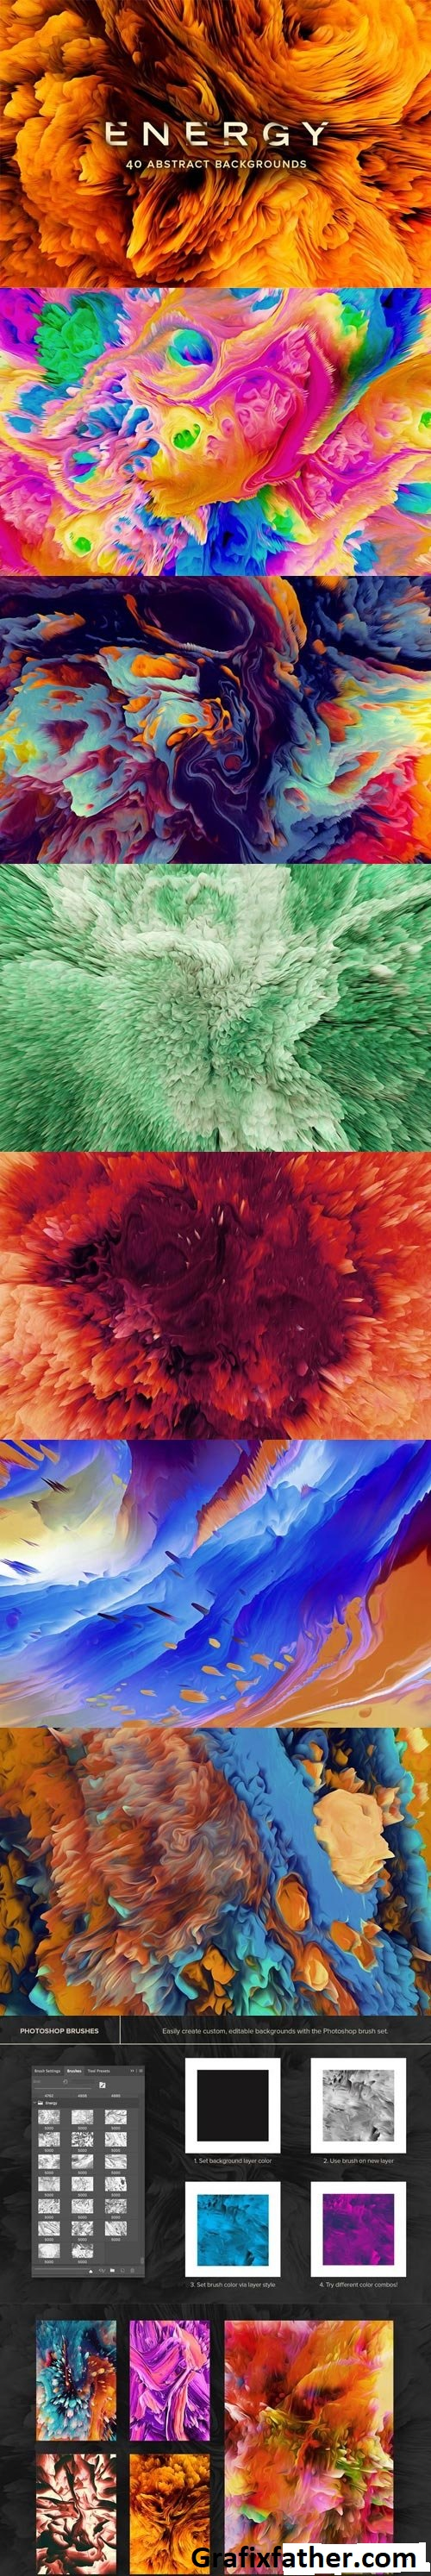 Energy 40 Abstract Backgrounds Cover